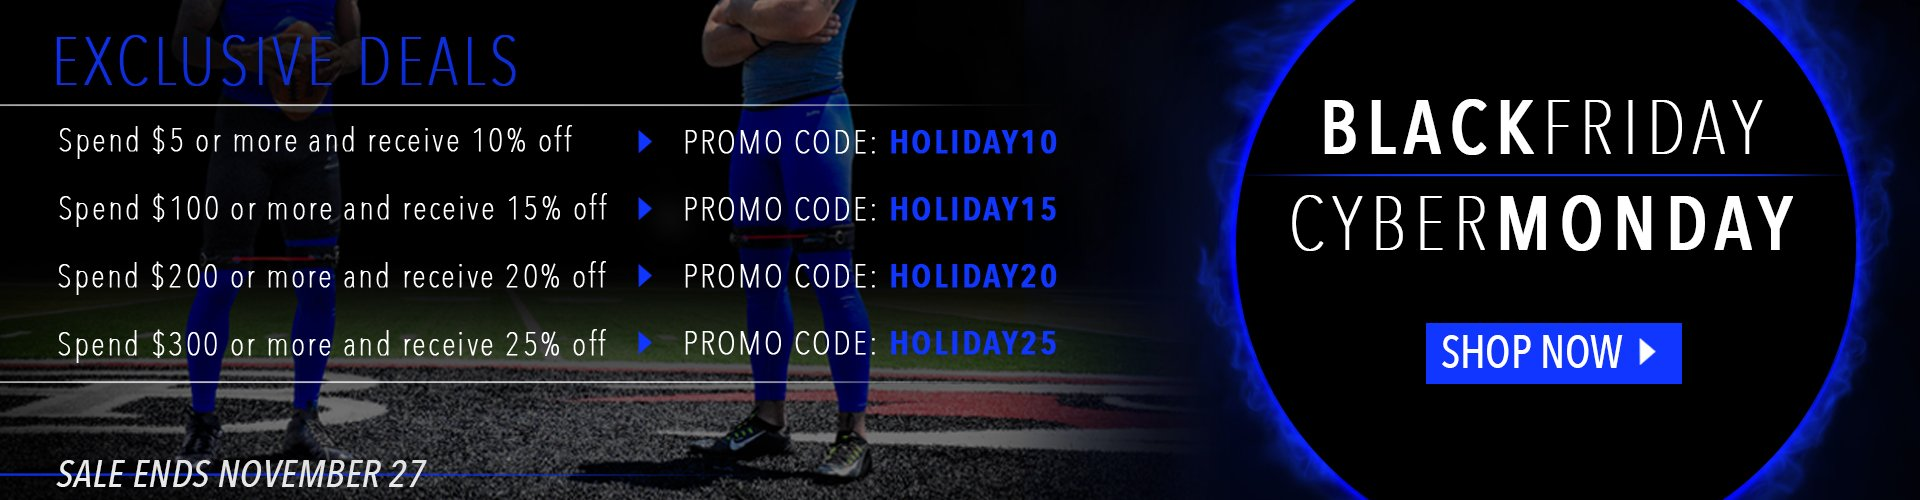 Black Friday and Cyber Monday 2017 Deals - Save 10-25% on every item - Shop All Products Now!